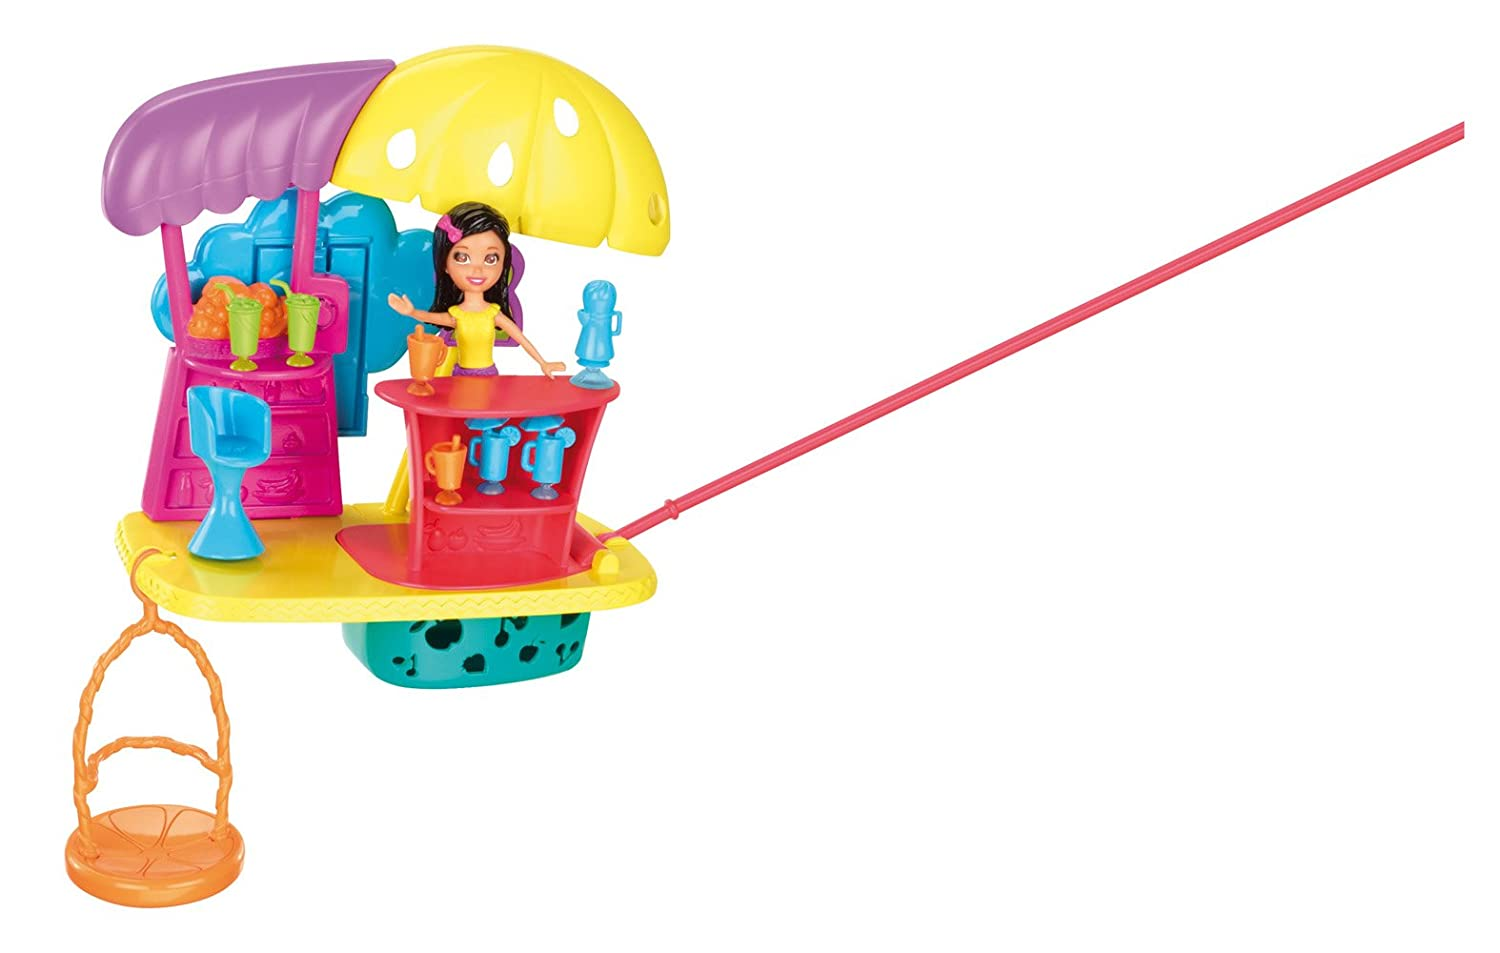 Mattel Polly Pocket Wall Party modello 2 Y7117 Mattel Italy s.r.l.